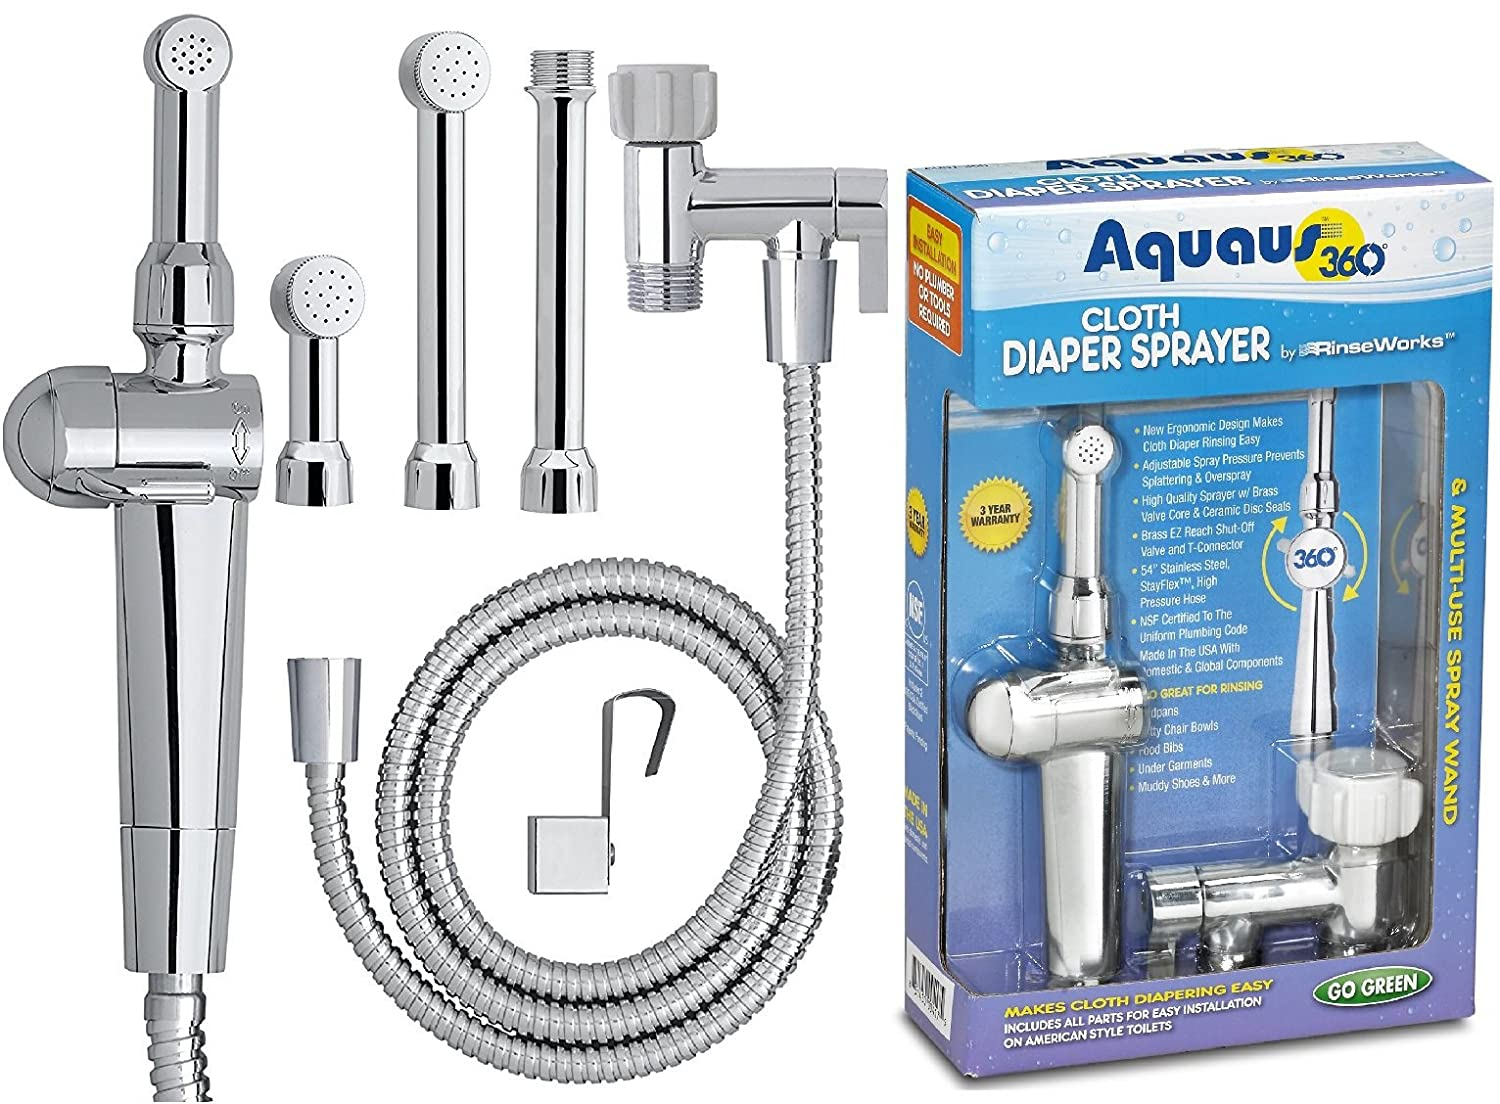 RinseWorks – Patented Aquaus 360 Diaper Sprayer - NSF Certified for Legal Installation - 3 Year Warranty – Dual Spray Pressure Controls – SafeSpray Valve Core, StayFlex Hose ABT-360E